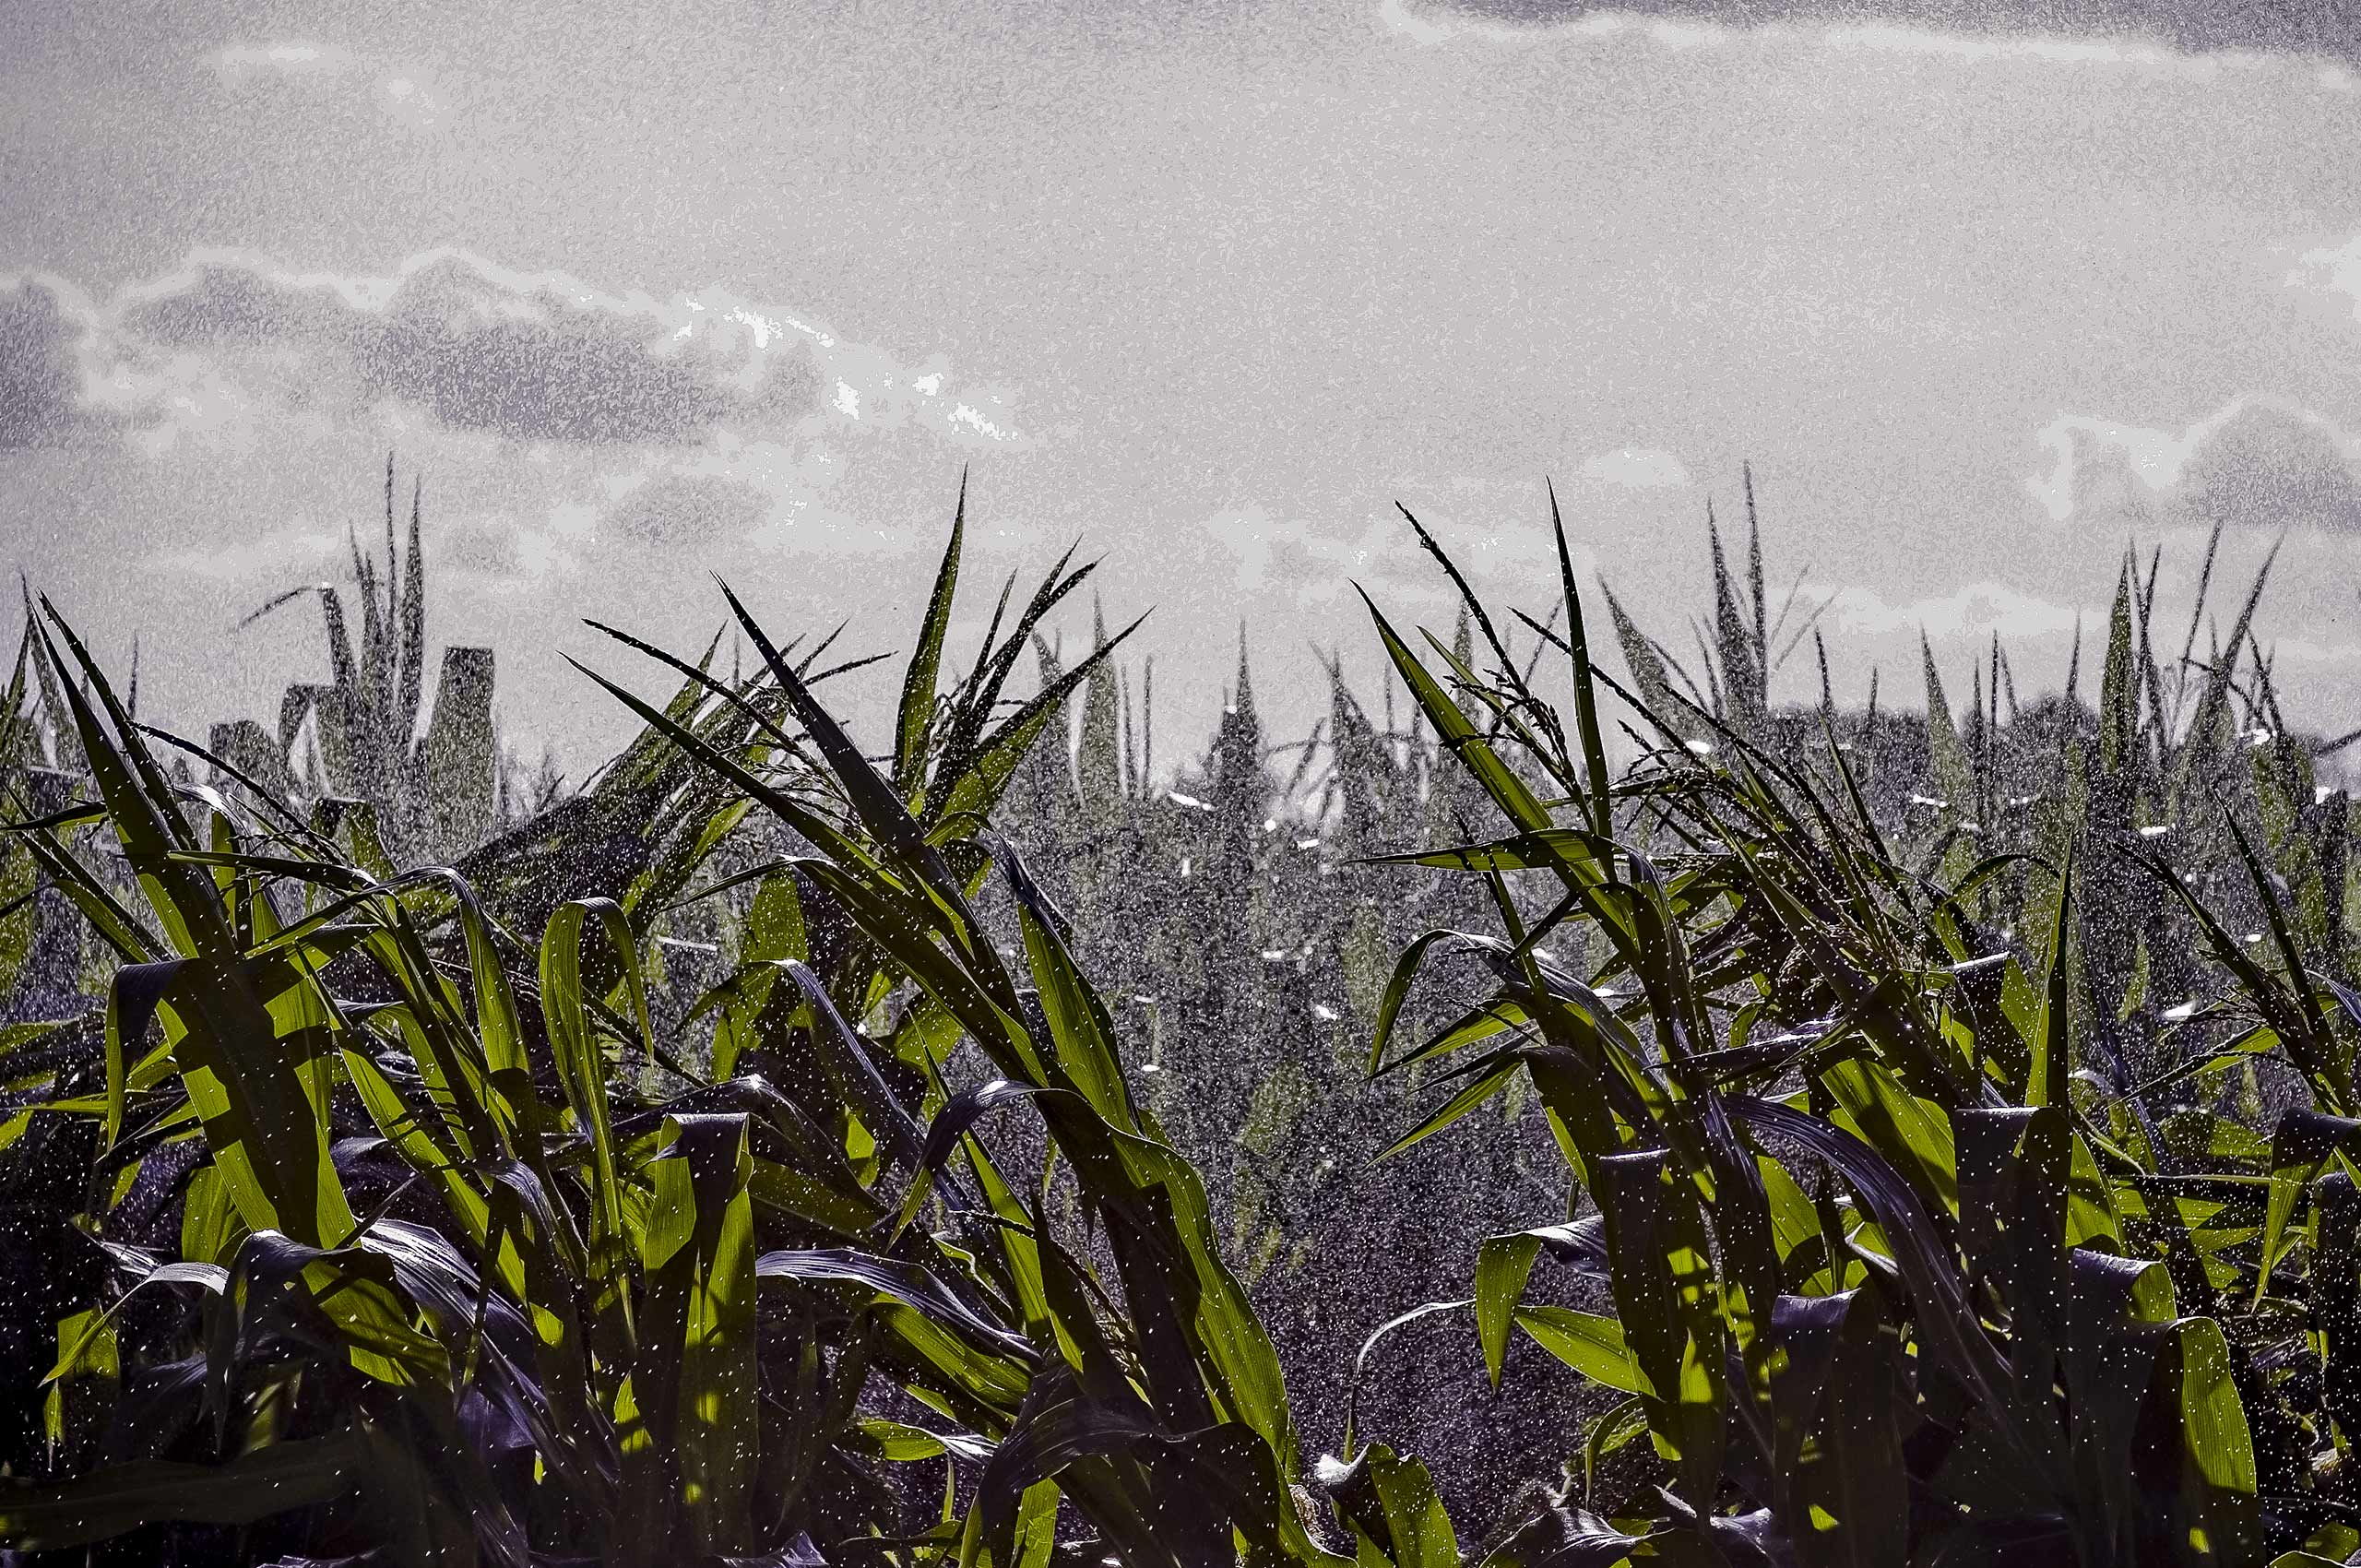 Corn_fields_water_spray_environment.jpg